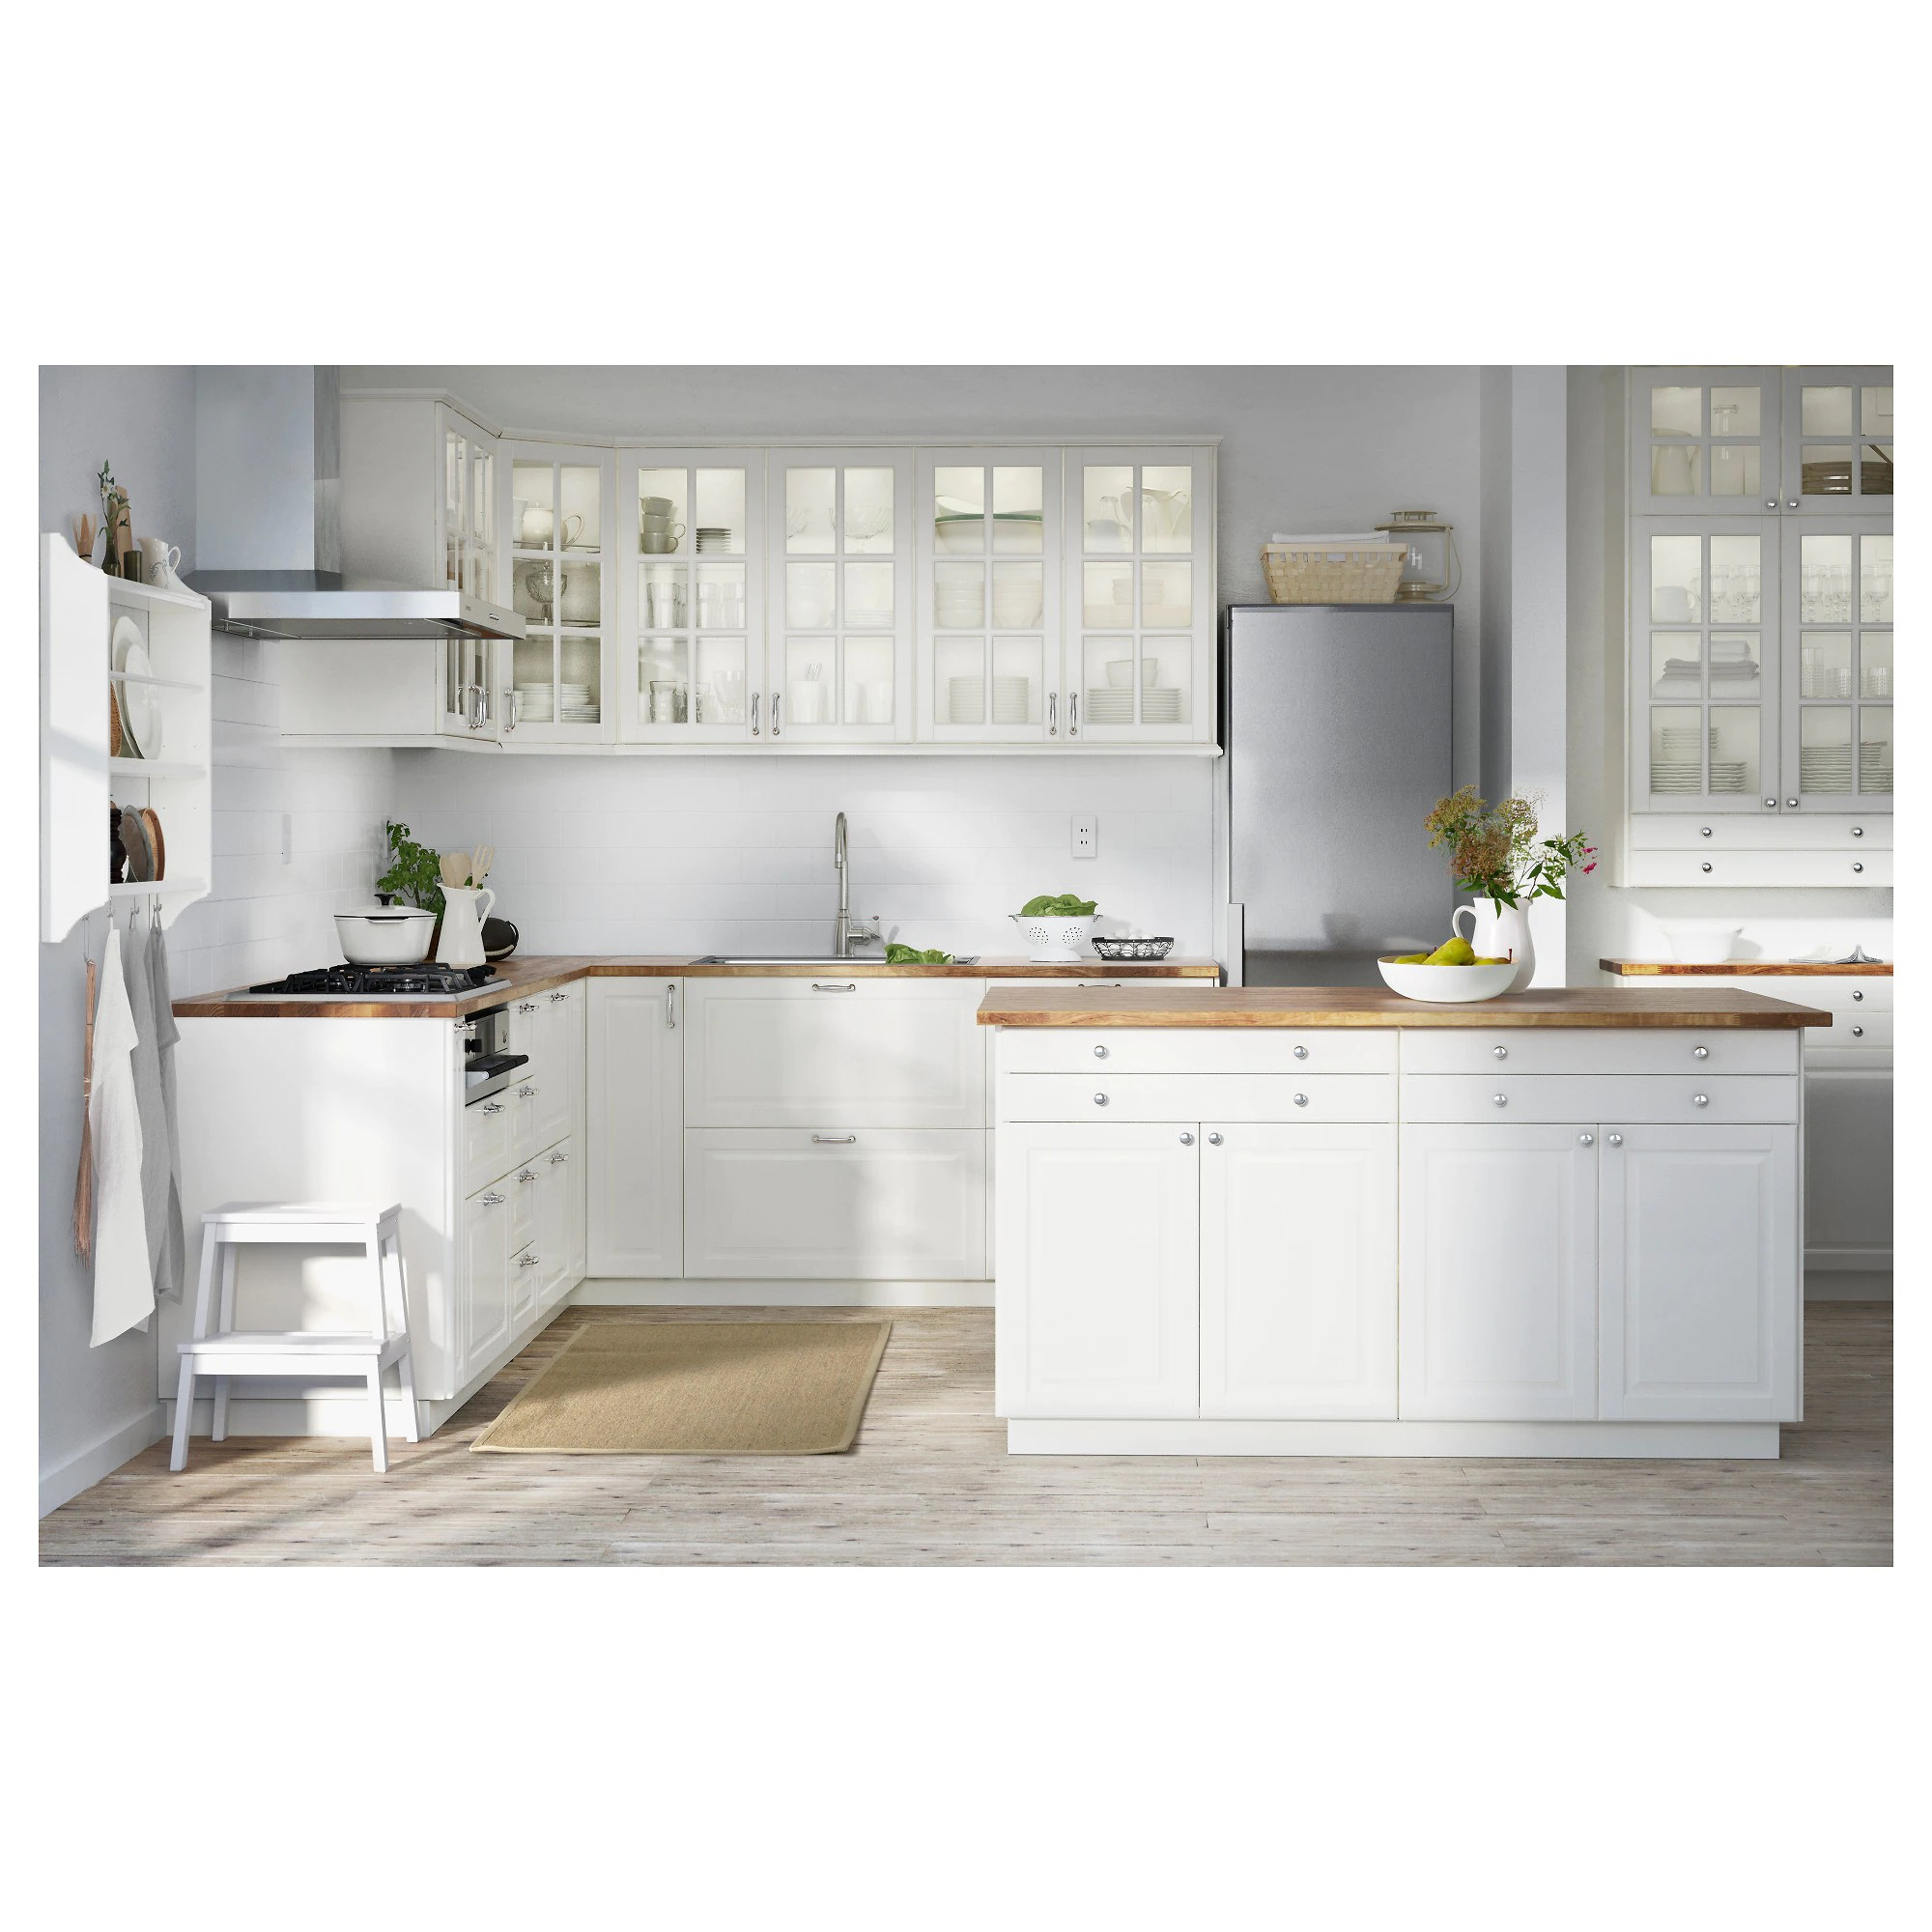 Montage Cuisine Ikea Metod Ikea Cuisine Bodbyn Cool Ikea Pantry Bodbyn Google Search With